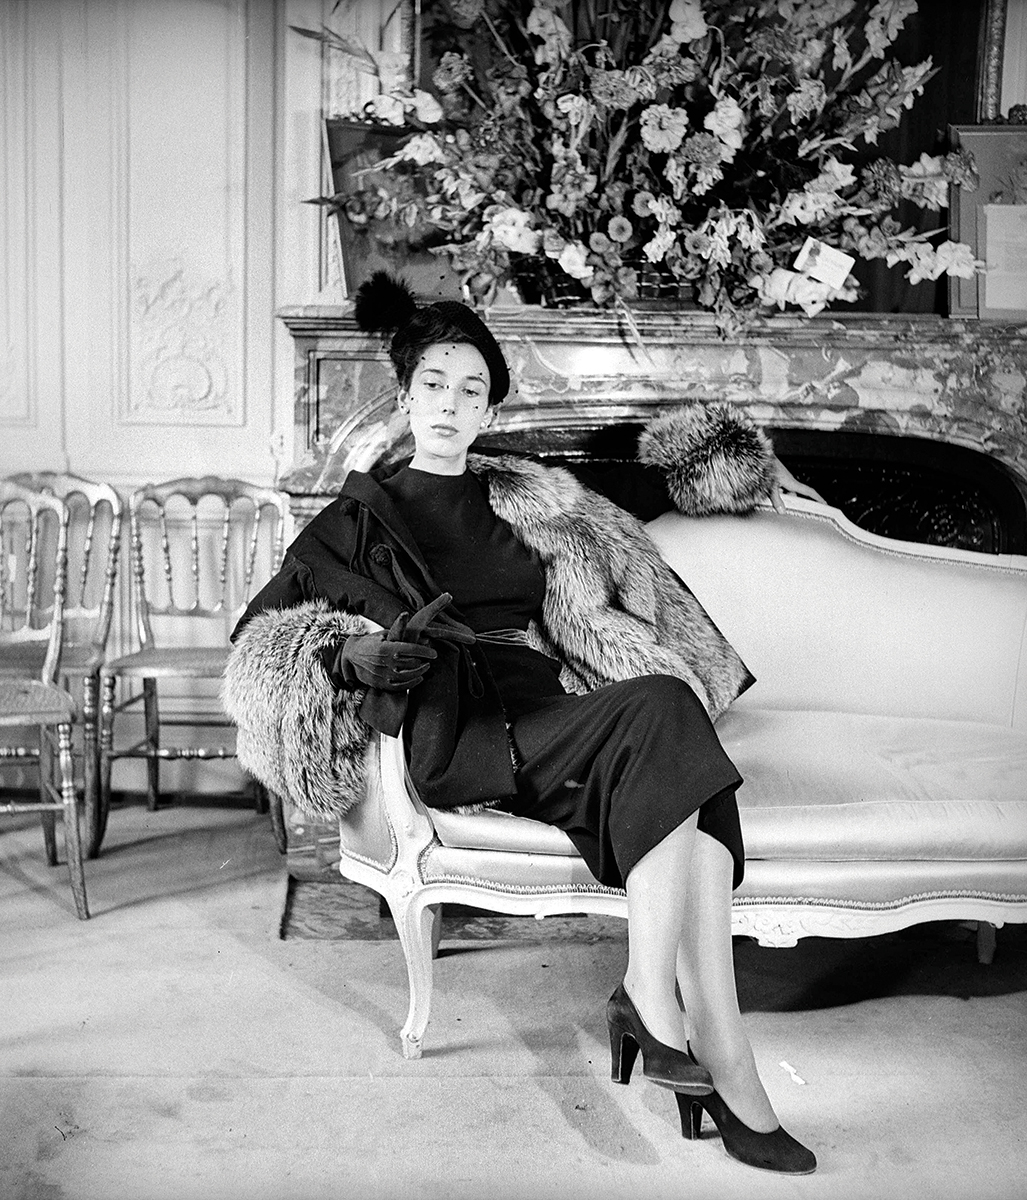 Uma modelo com o New Look de Christian Dior, 1947. ©Getty Images